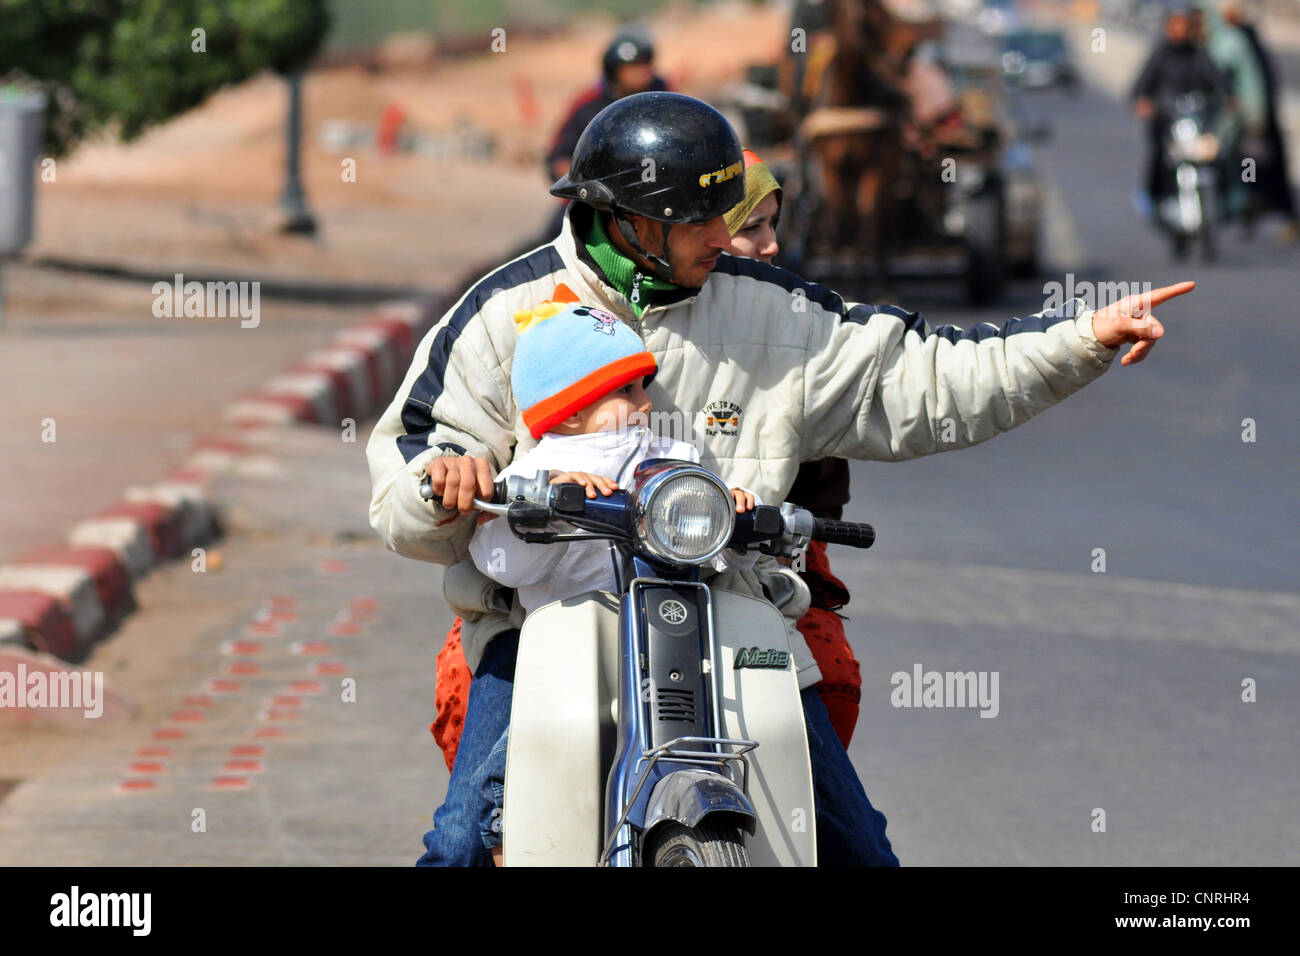 Whole Family on a motorbike, Marrakesh, Morocco - Stock Image